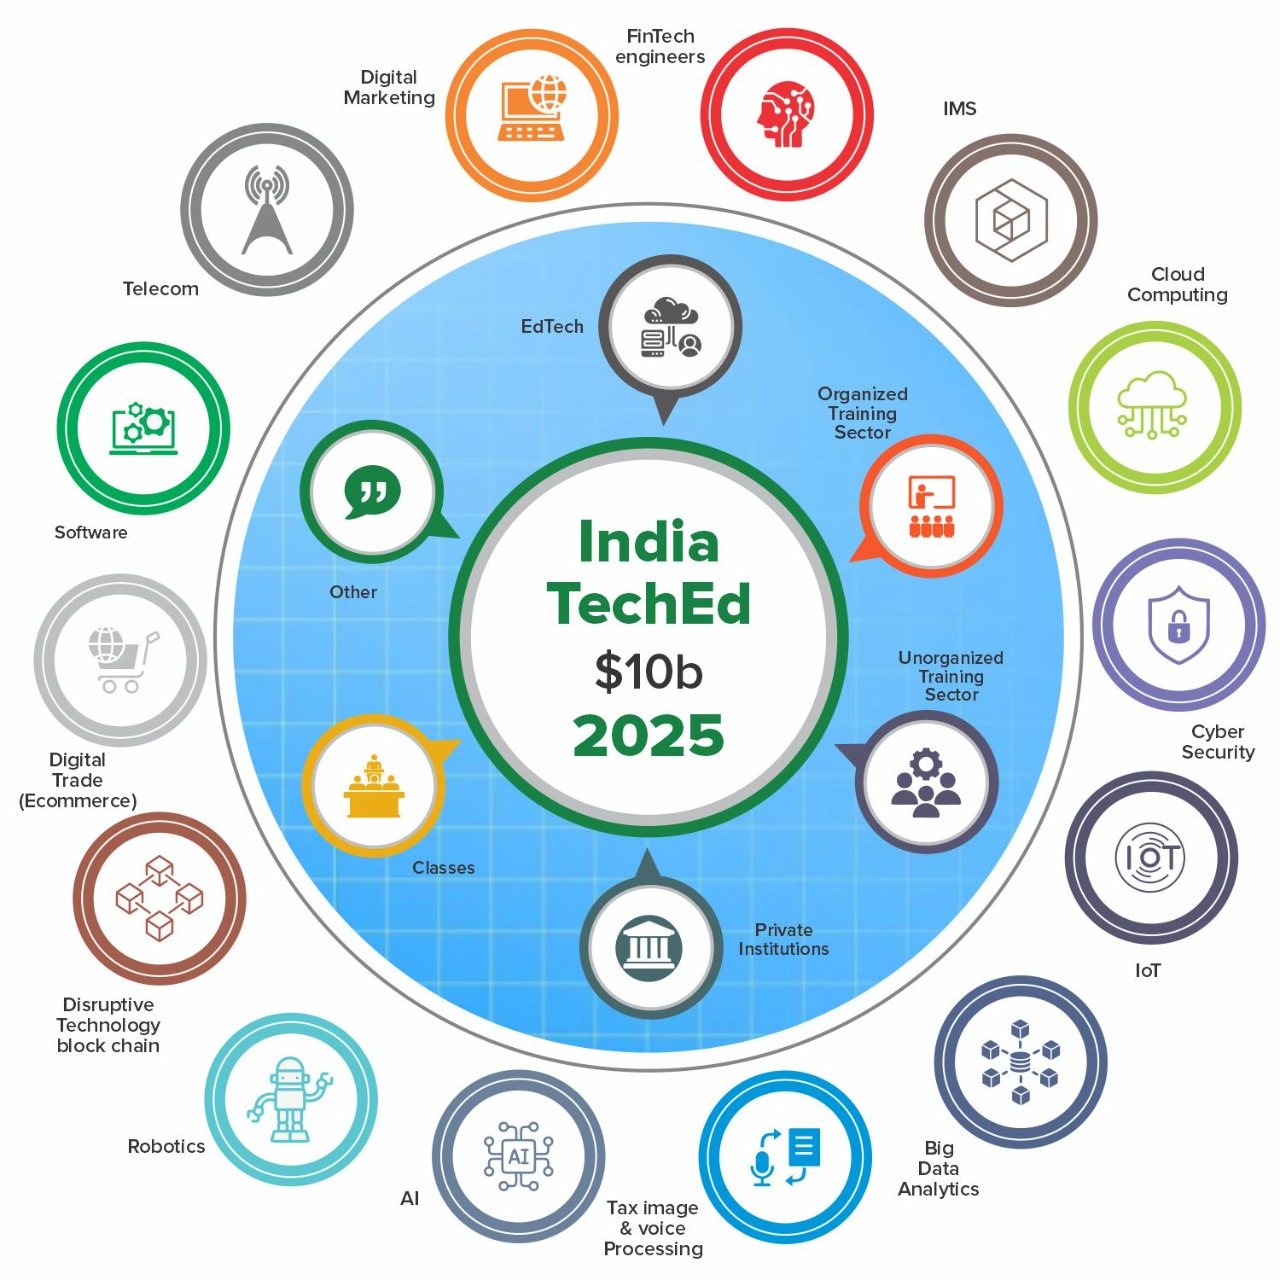 TechEd – The race to USD 10 Billion India Market by 2025